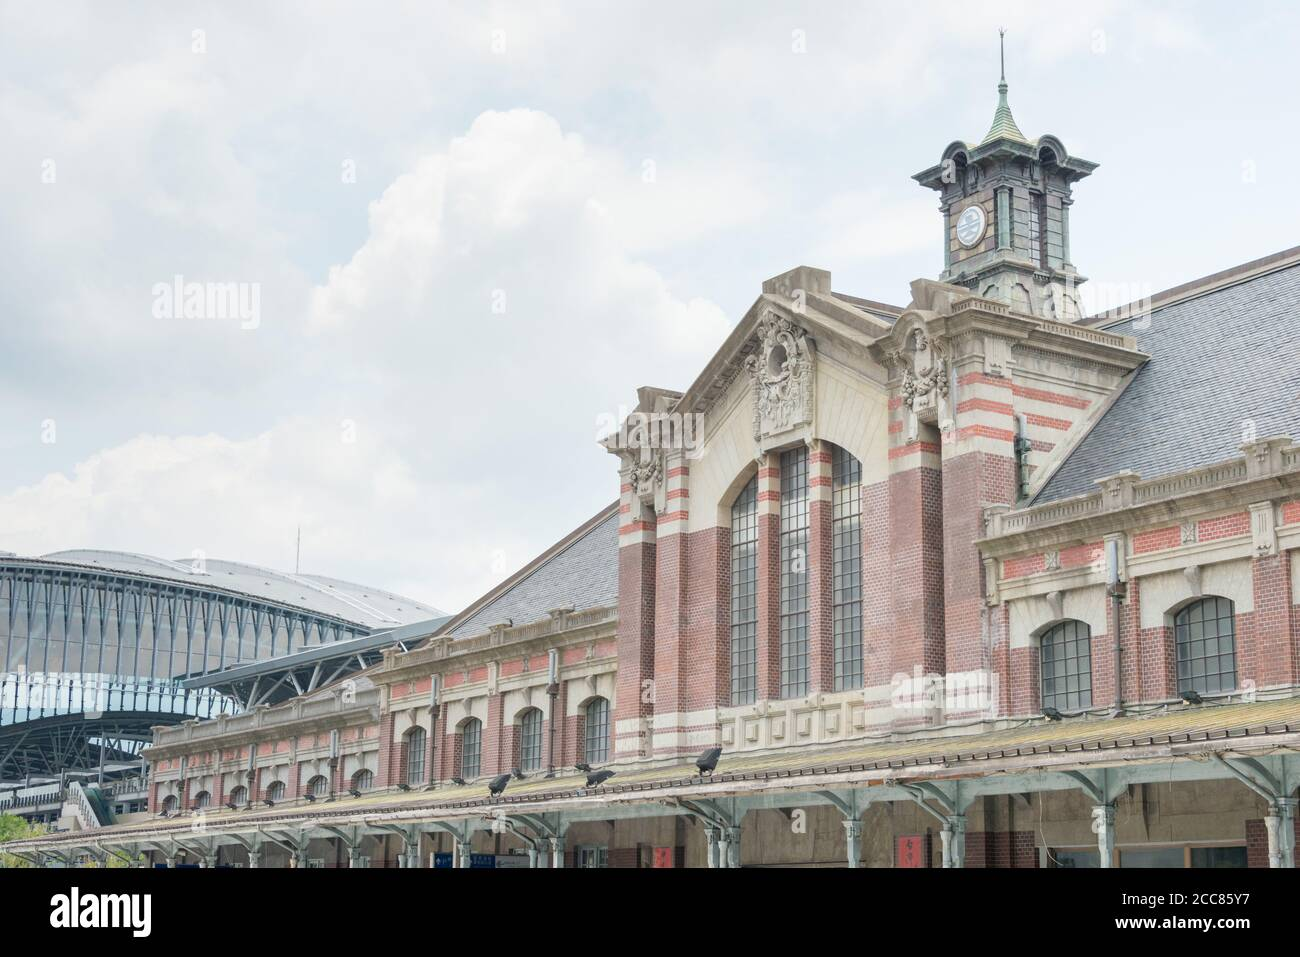 Taichung railway station (Old station) in Taichung, Taiwan. The station was Opened in 1905, and is classified as a National Tier 2 Historic Site. Stock Photo